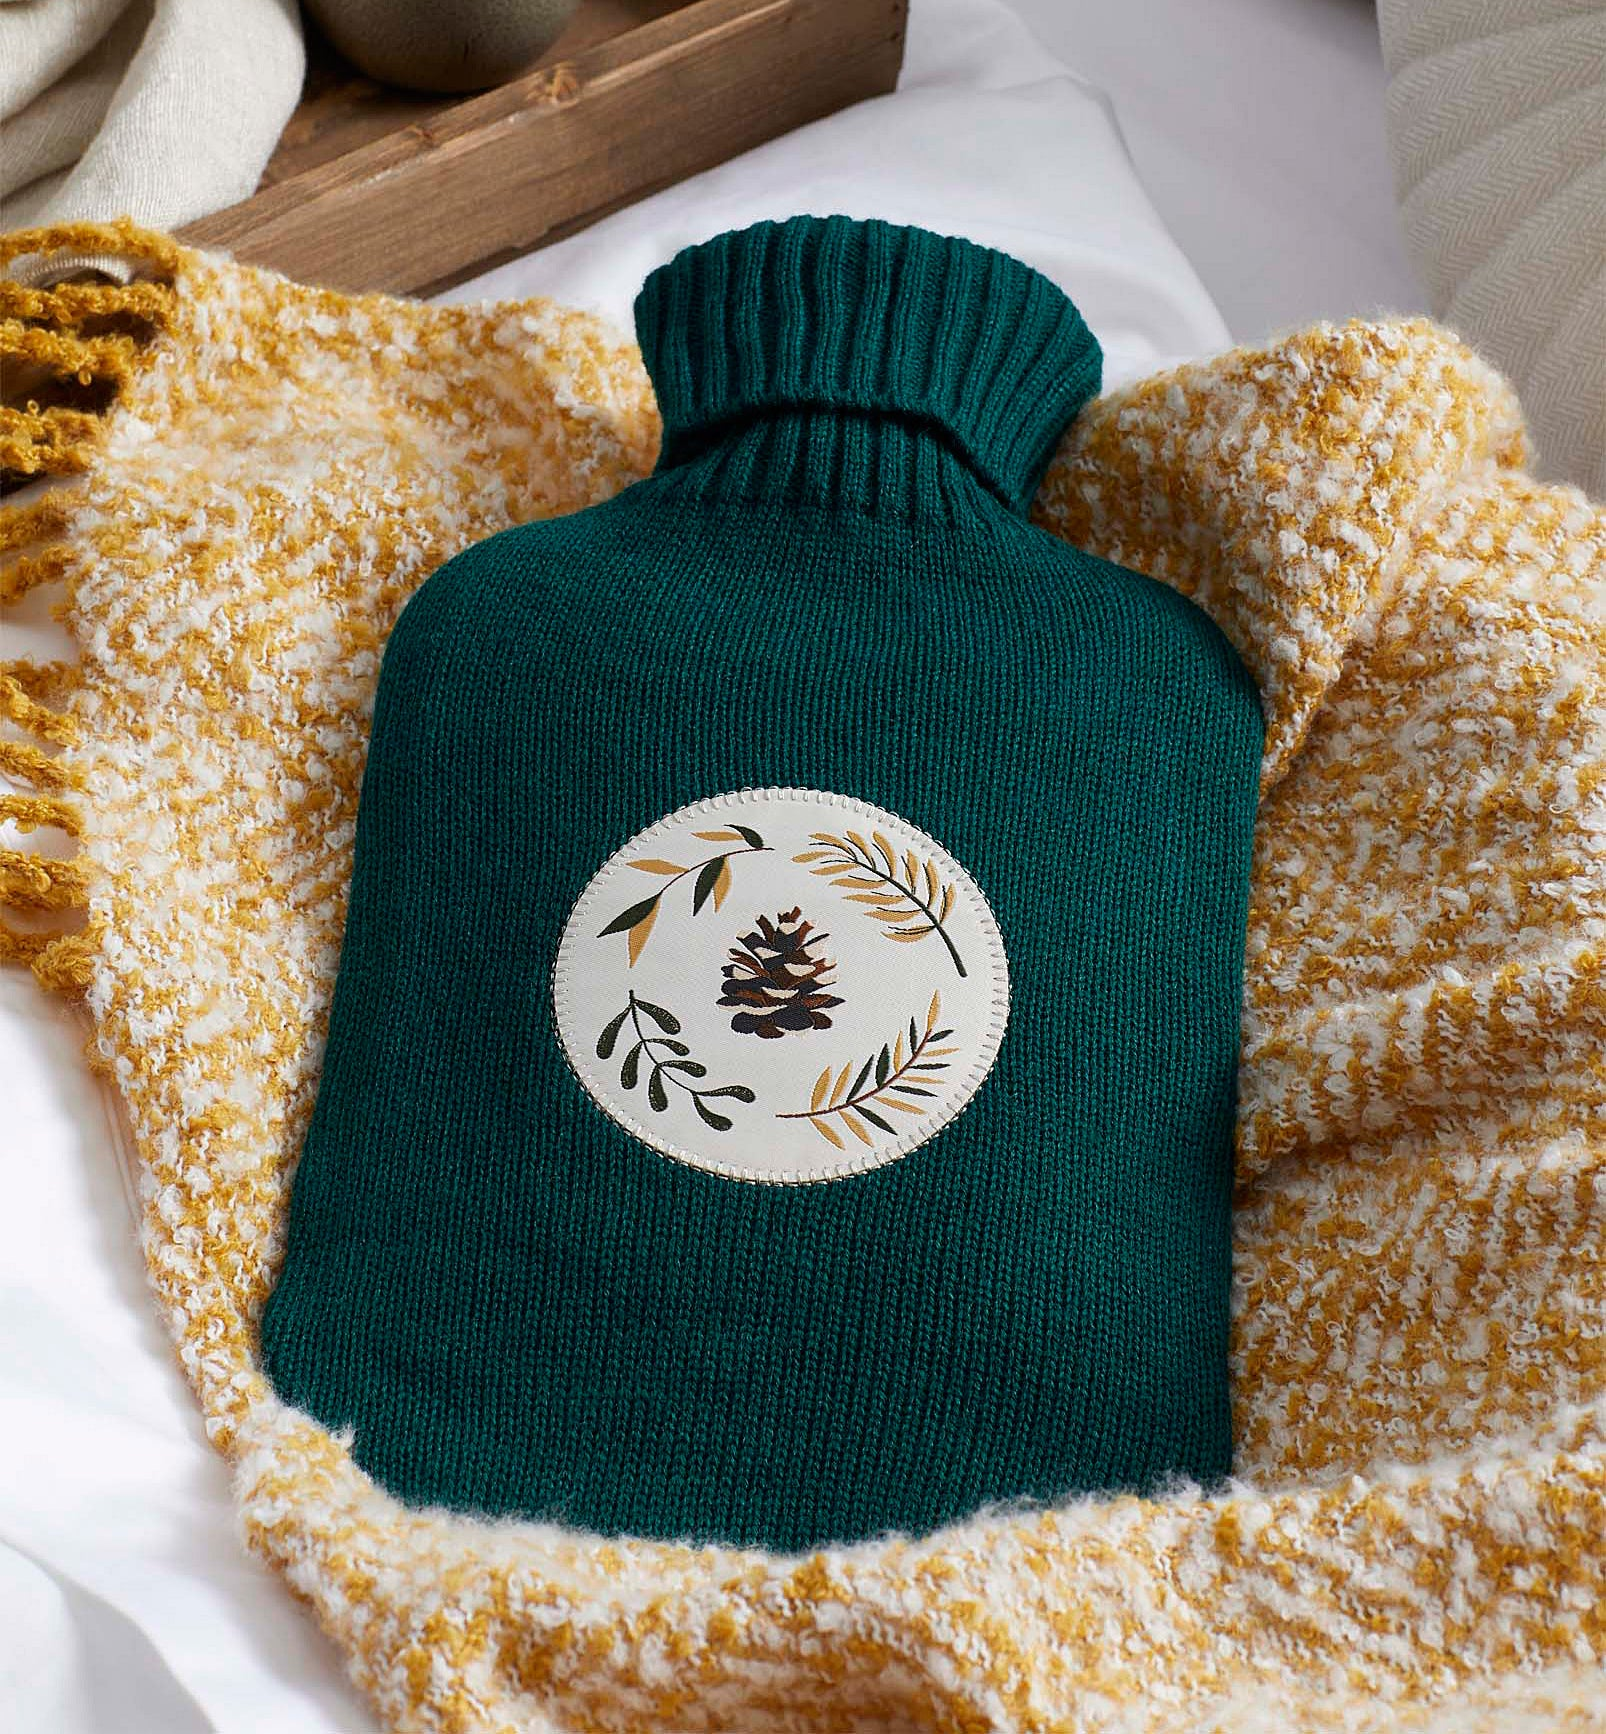 The hot water bottle on a fluffy blanket